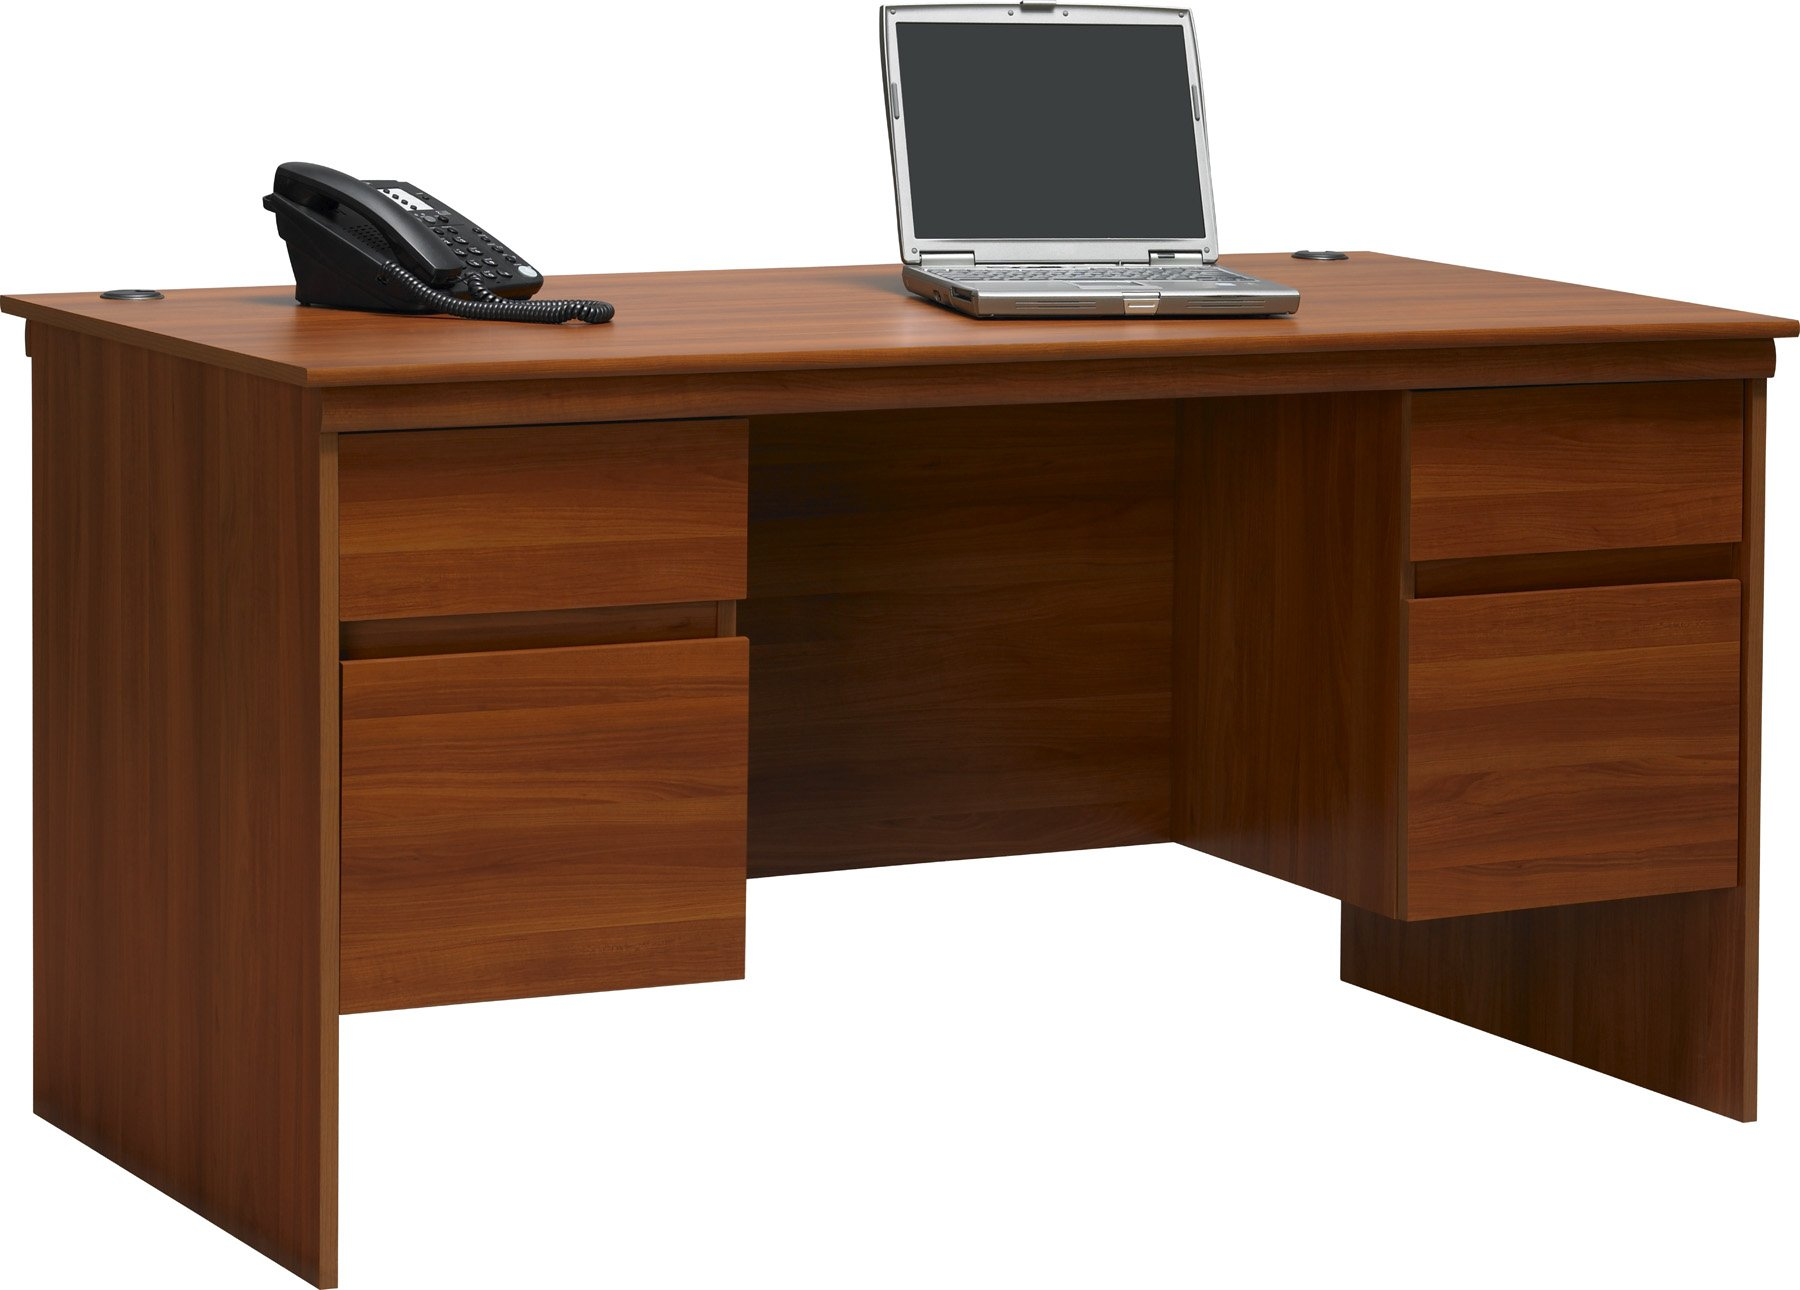 double along as eye cinnamon furniture home review with l inc cherry zq and drawer for cline shaped writing under mutable wells ties is this drawers monarch desk storage